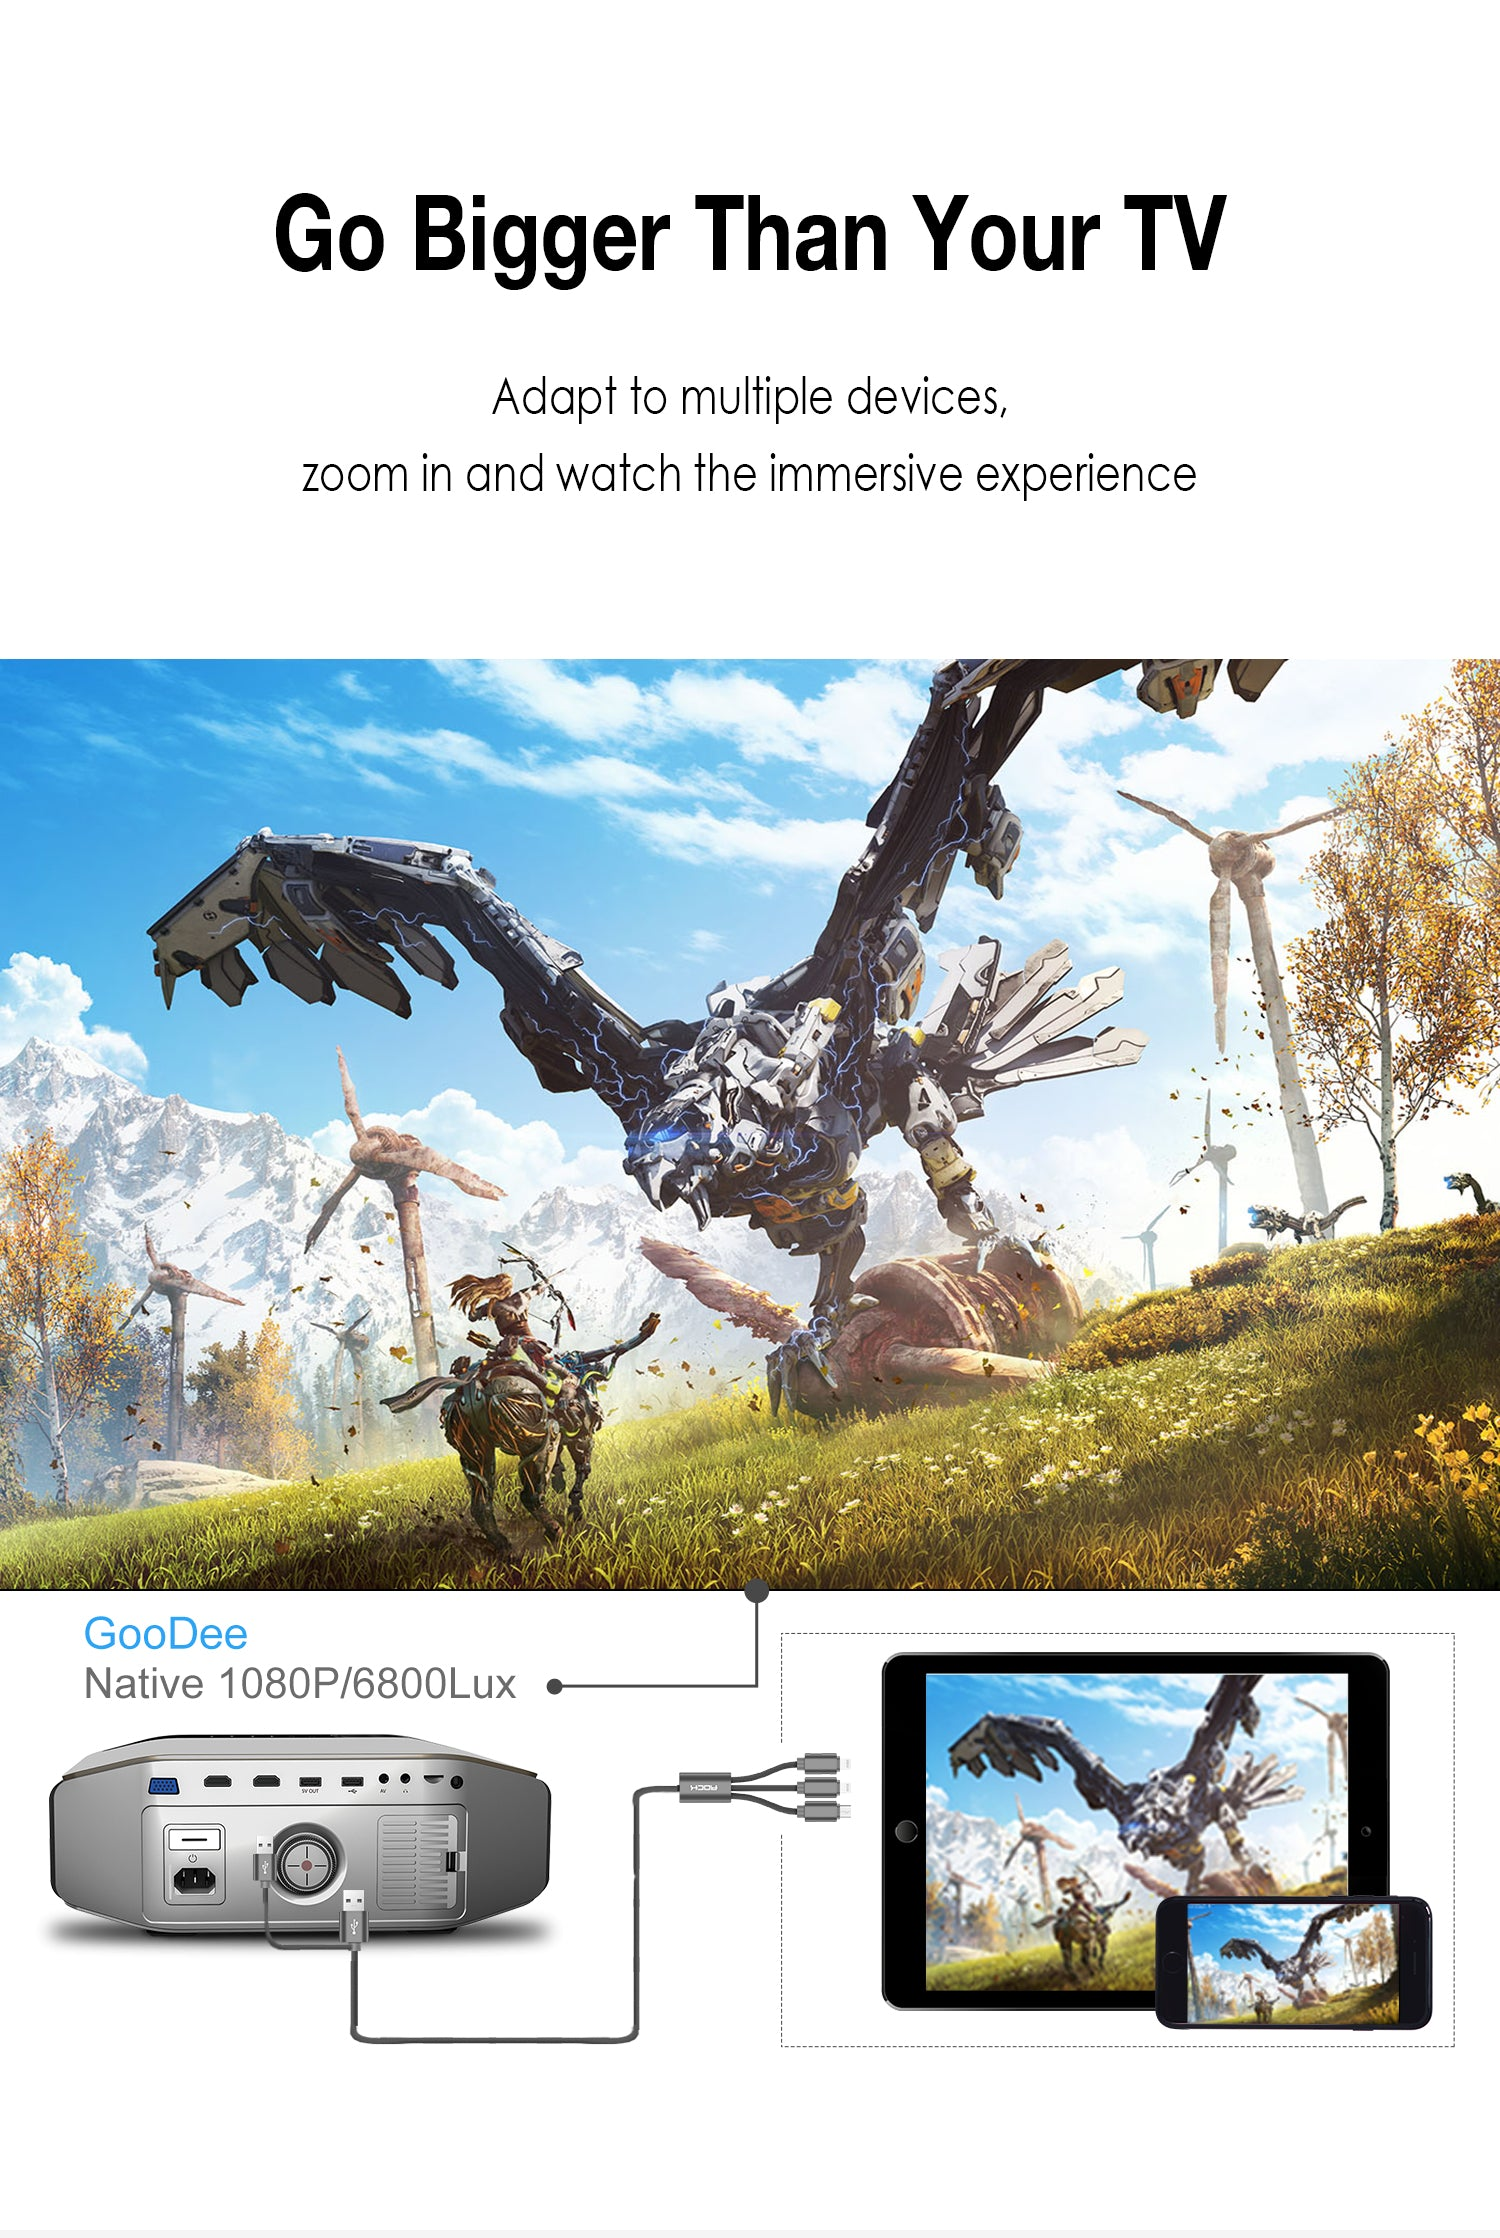 GooDee YG620 Newest LED Video Projector | Contrast 7000:1 | Native 1080P Projector